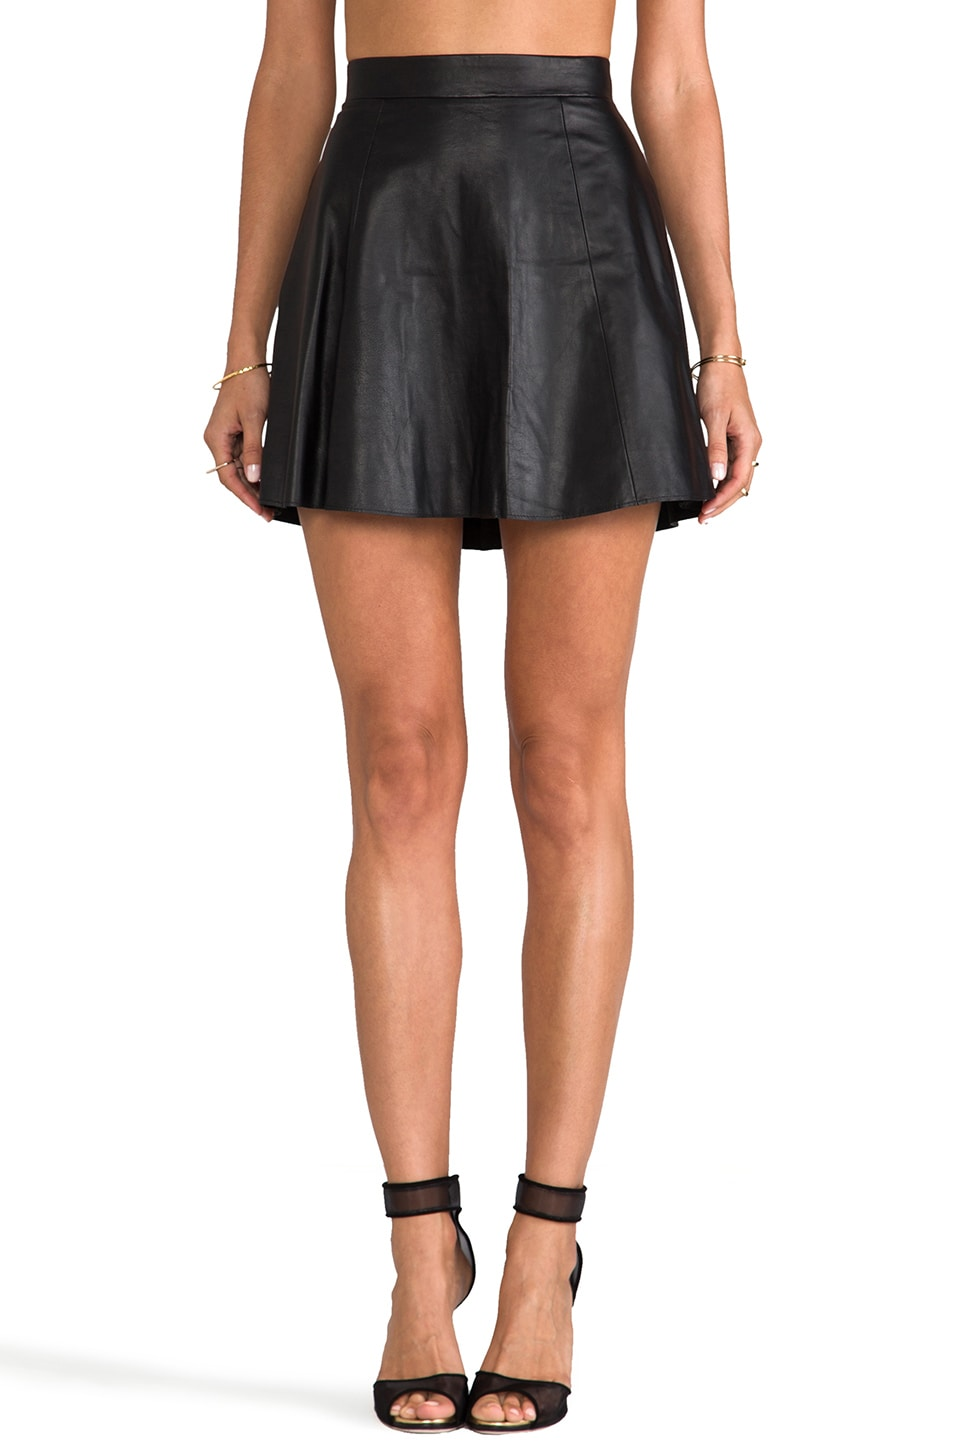 David Lerner The Bowery Leather Skirt in Black